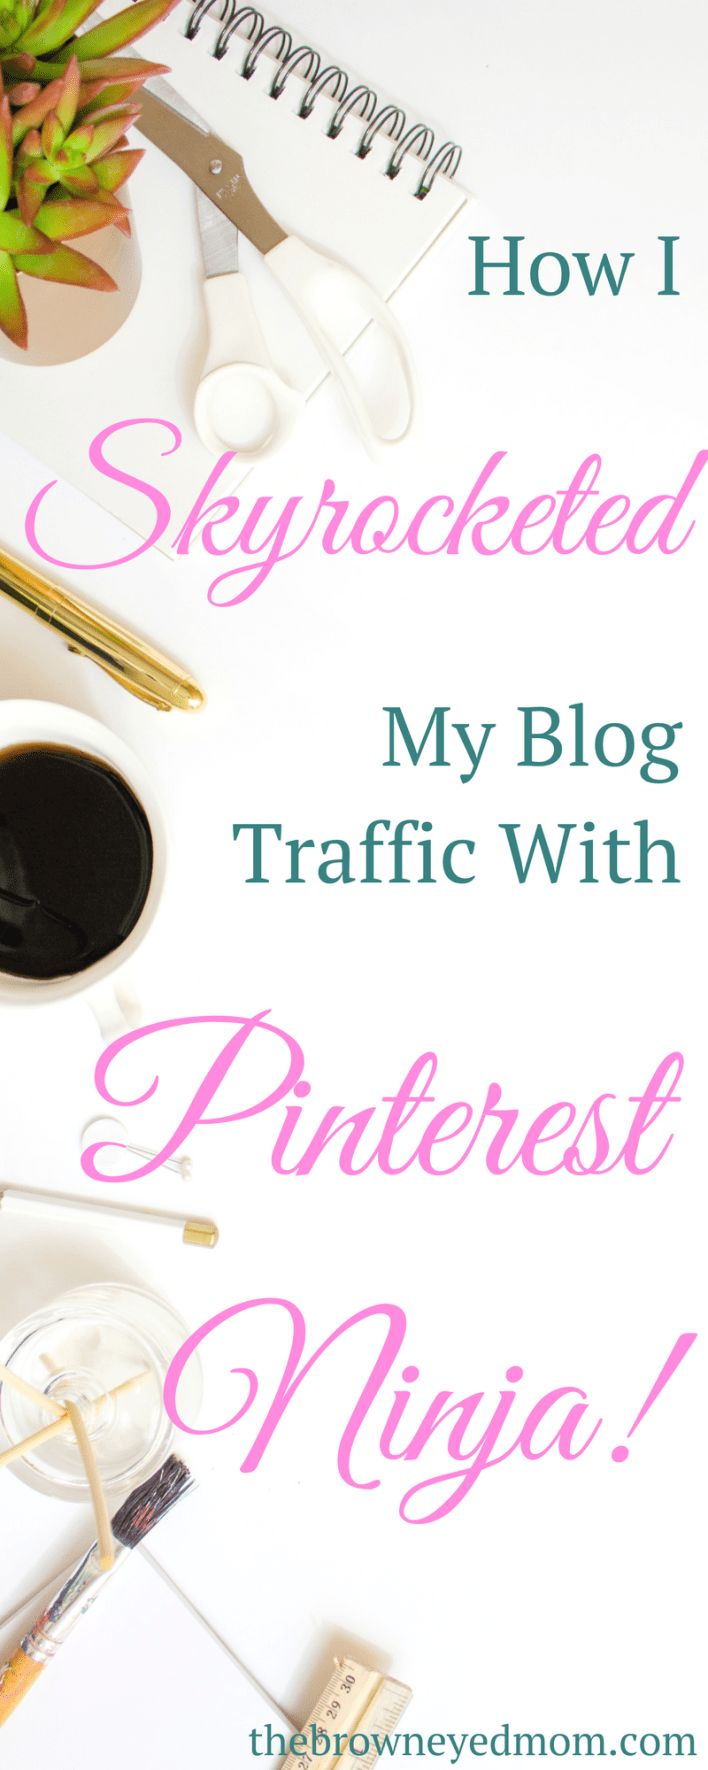 Boost Your Blog Traffic With Pinterest Ninja! - The Brown Eyed Mom